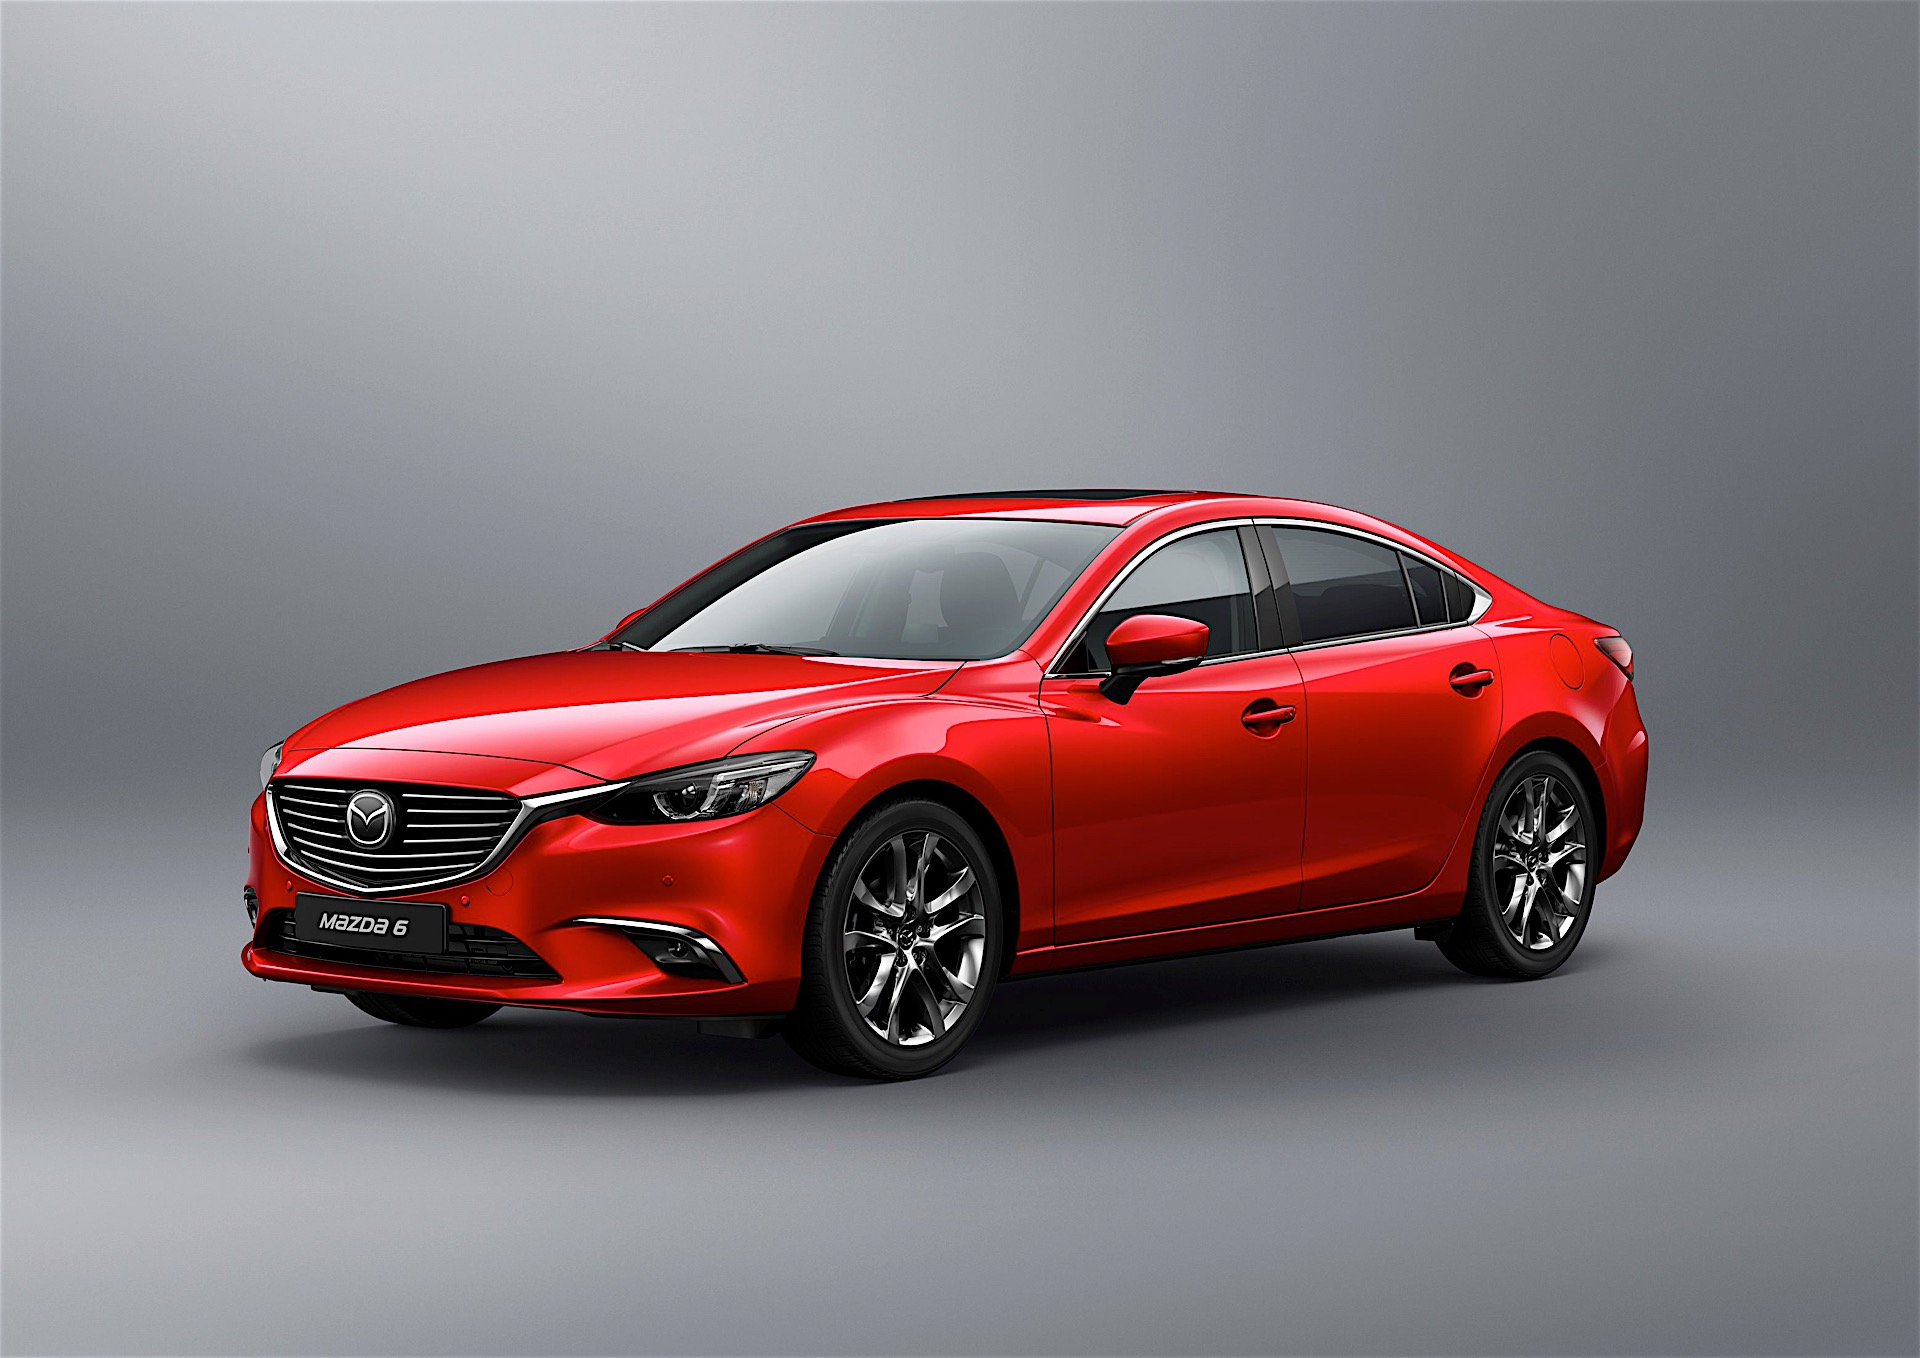 2017 mazda6 will be launched in europe this autumn has g. Black Bedroom Furniture Sets. Home Design Ideas